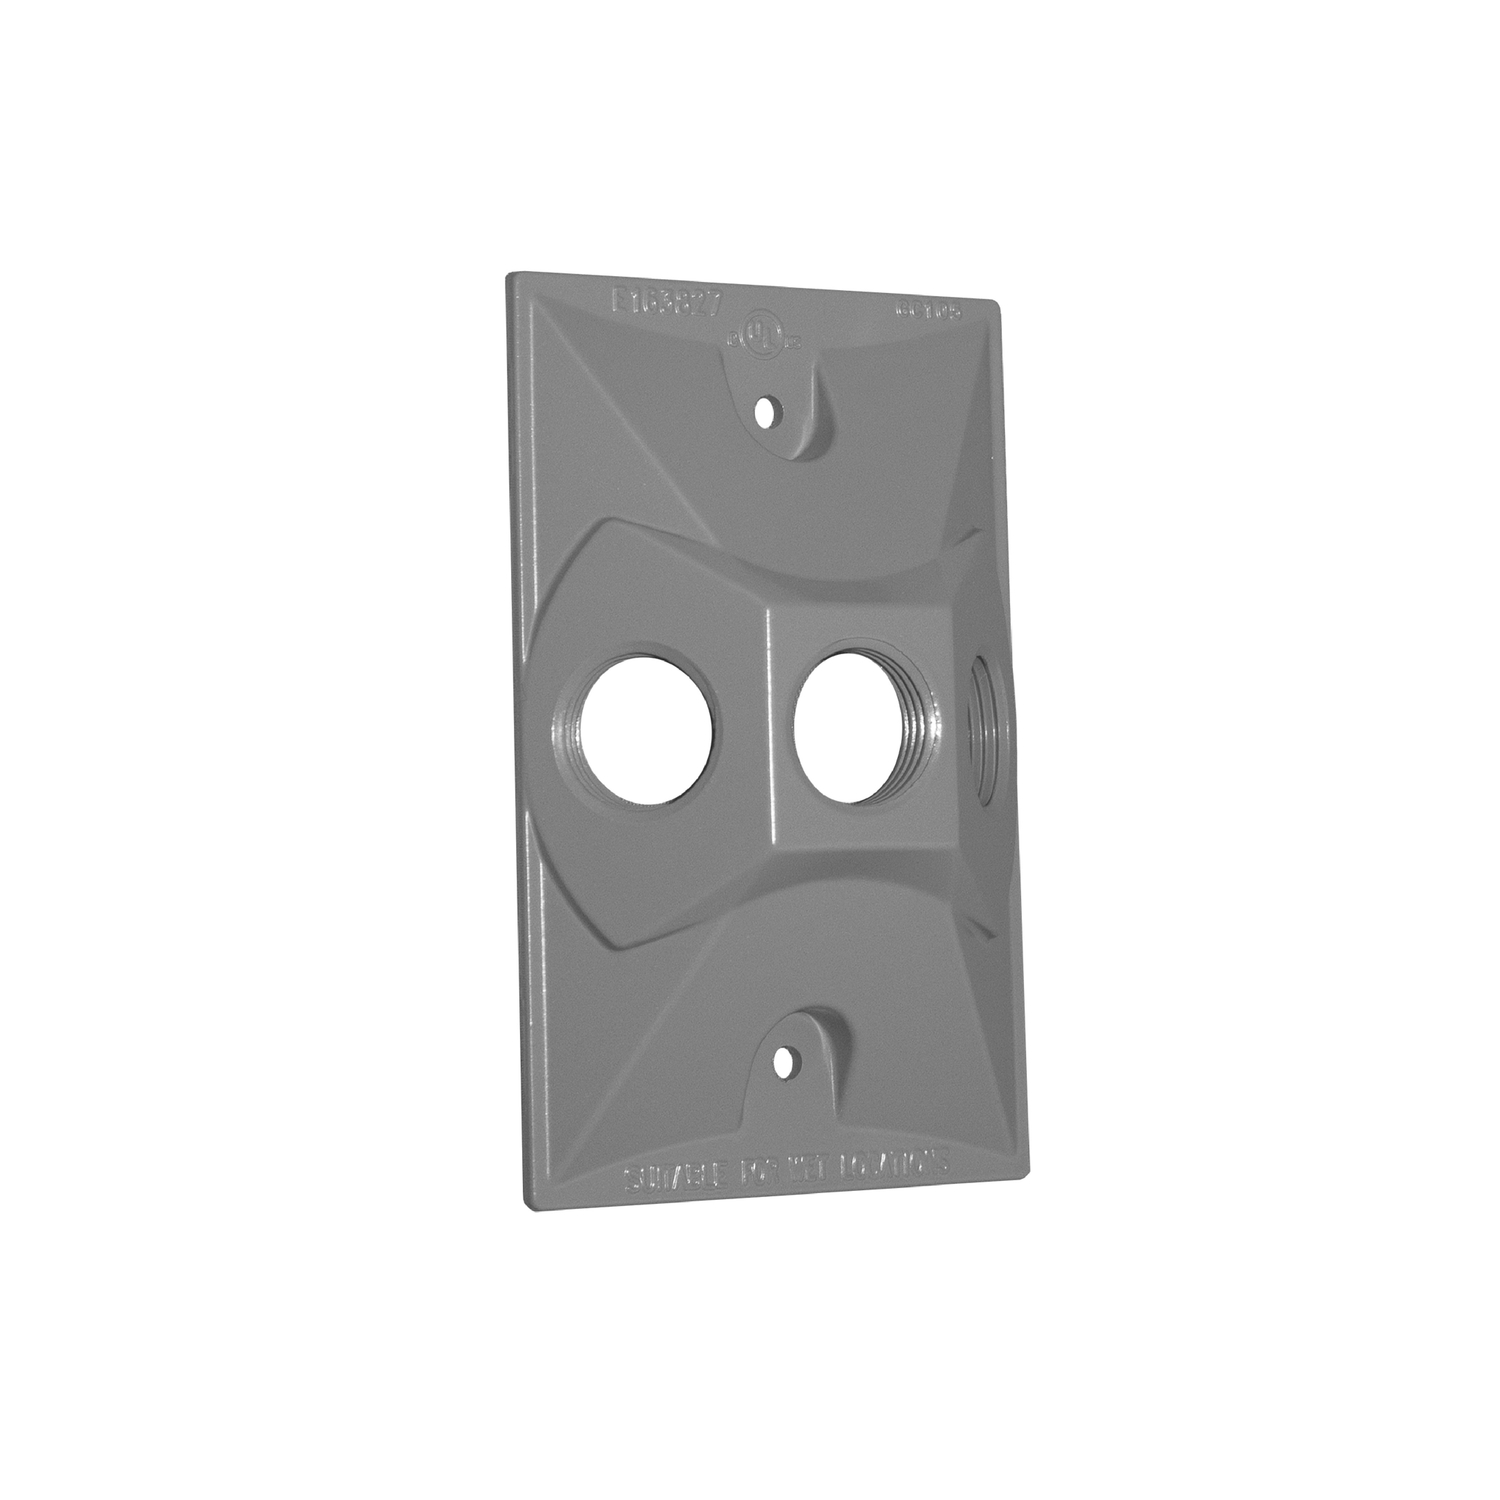 Sigma  Rectangle  Die cast Aluminum  1 gang Electrical Cover  For Light Fixtures